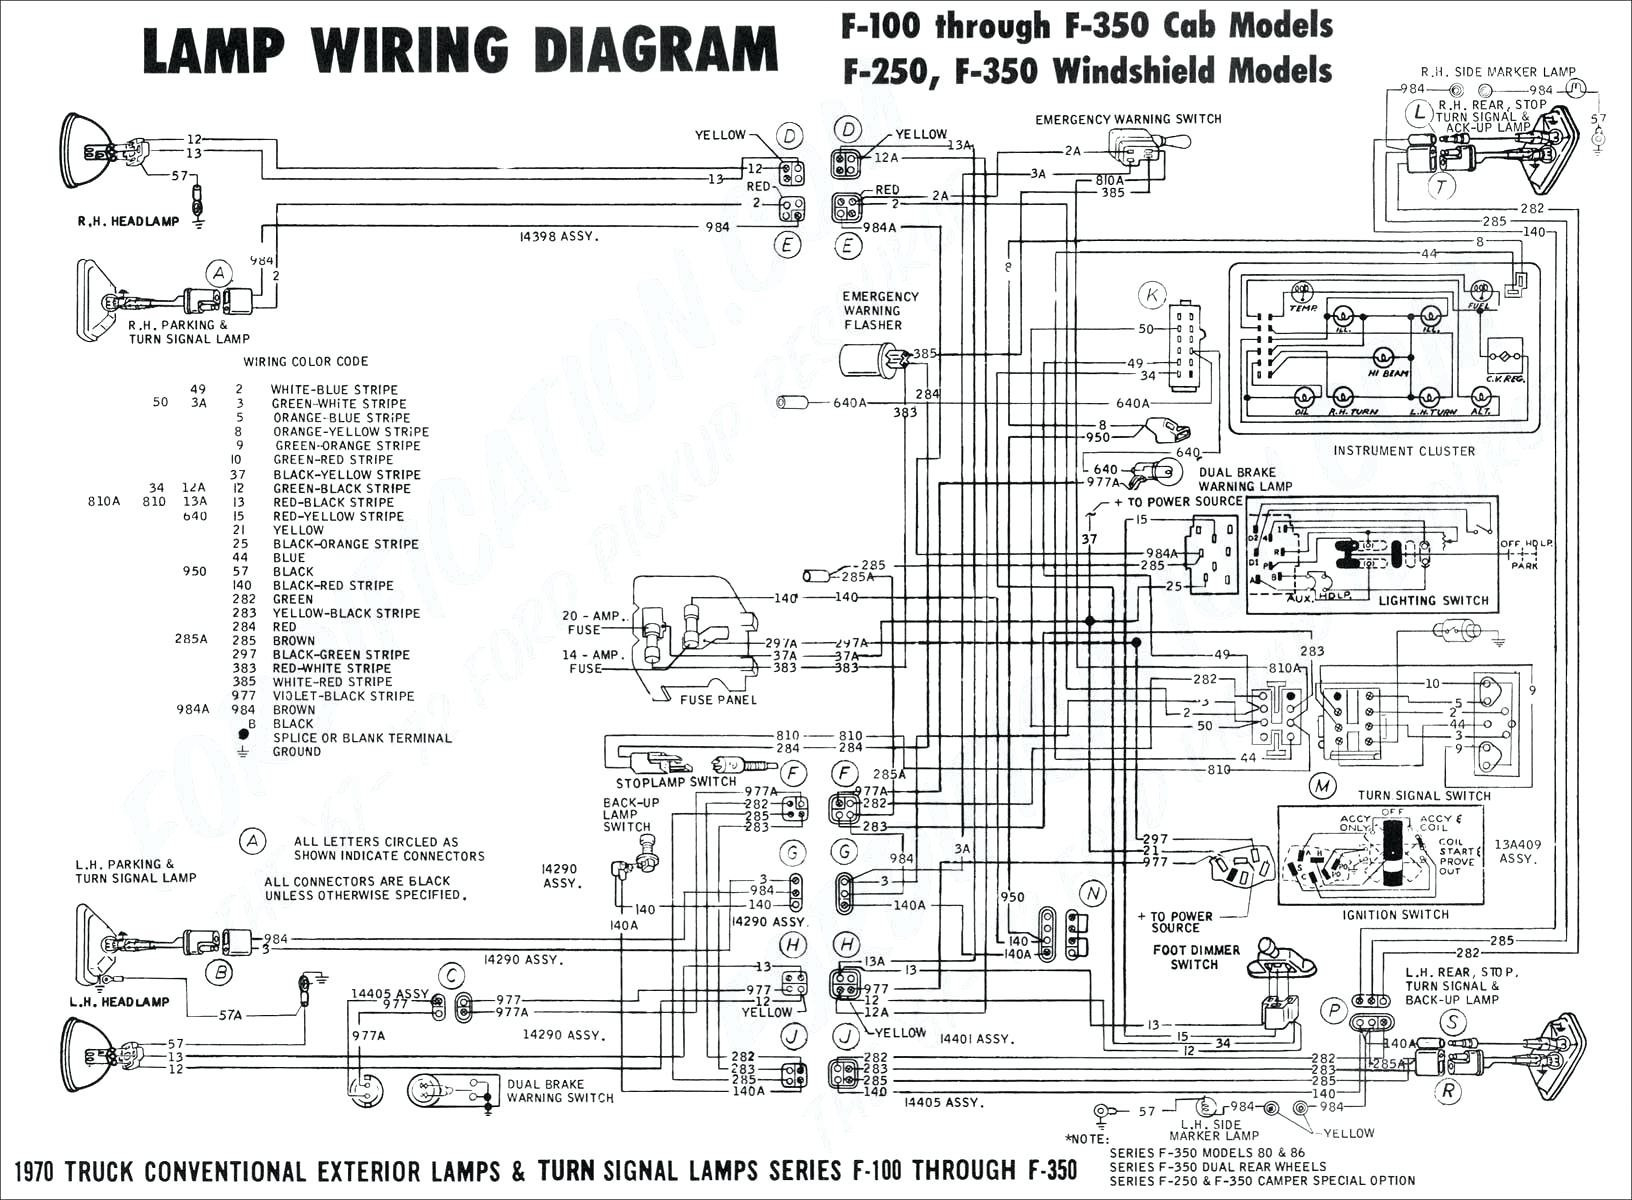 Westek 6503h Wiring Diagram | Wiring Diagram on